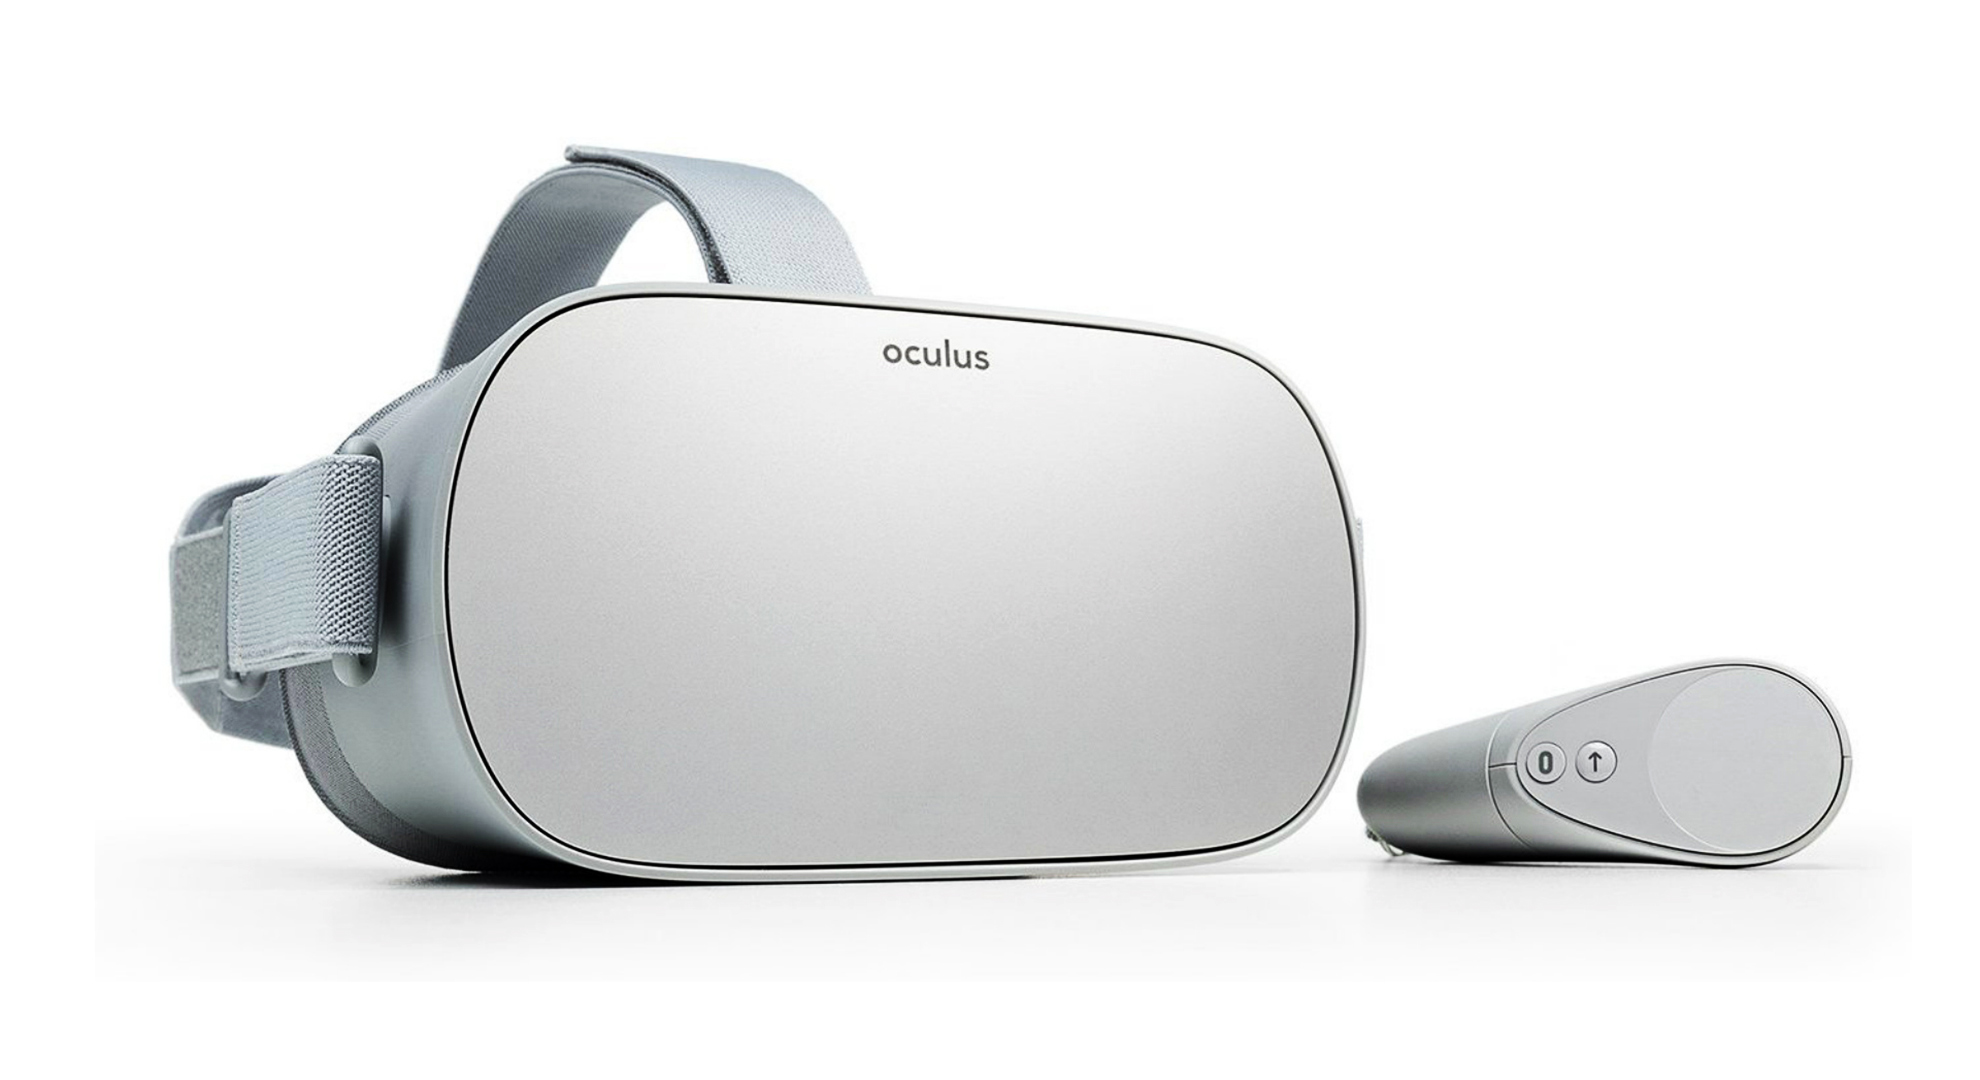 oculus-go-virtual-reality-headset